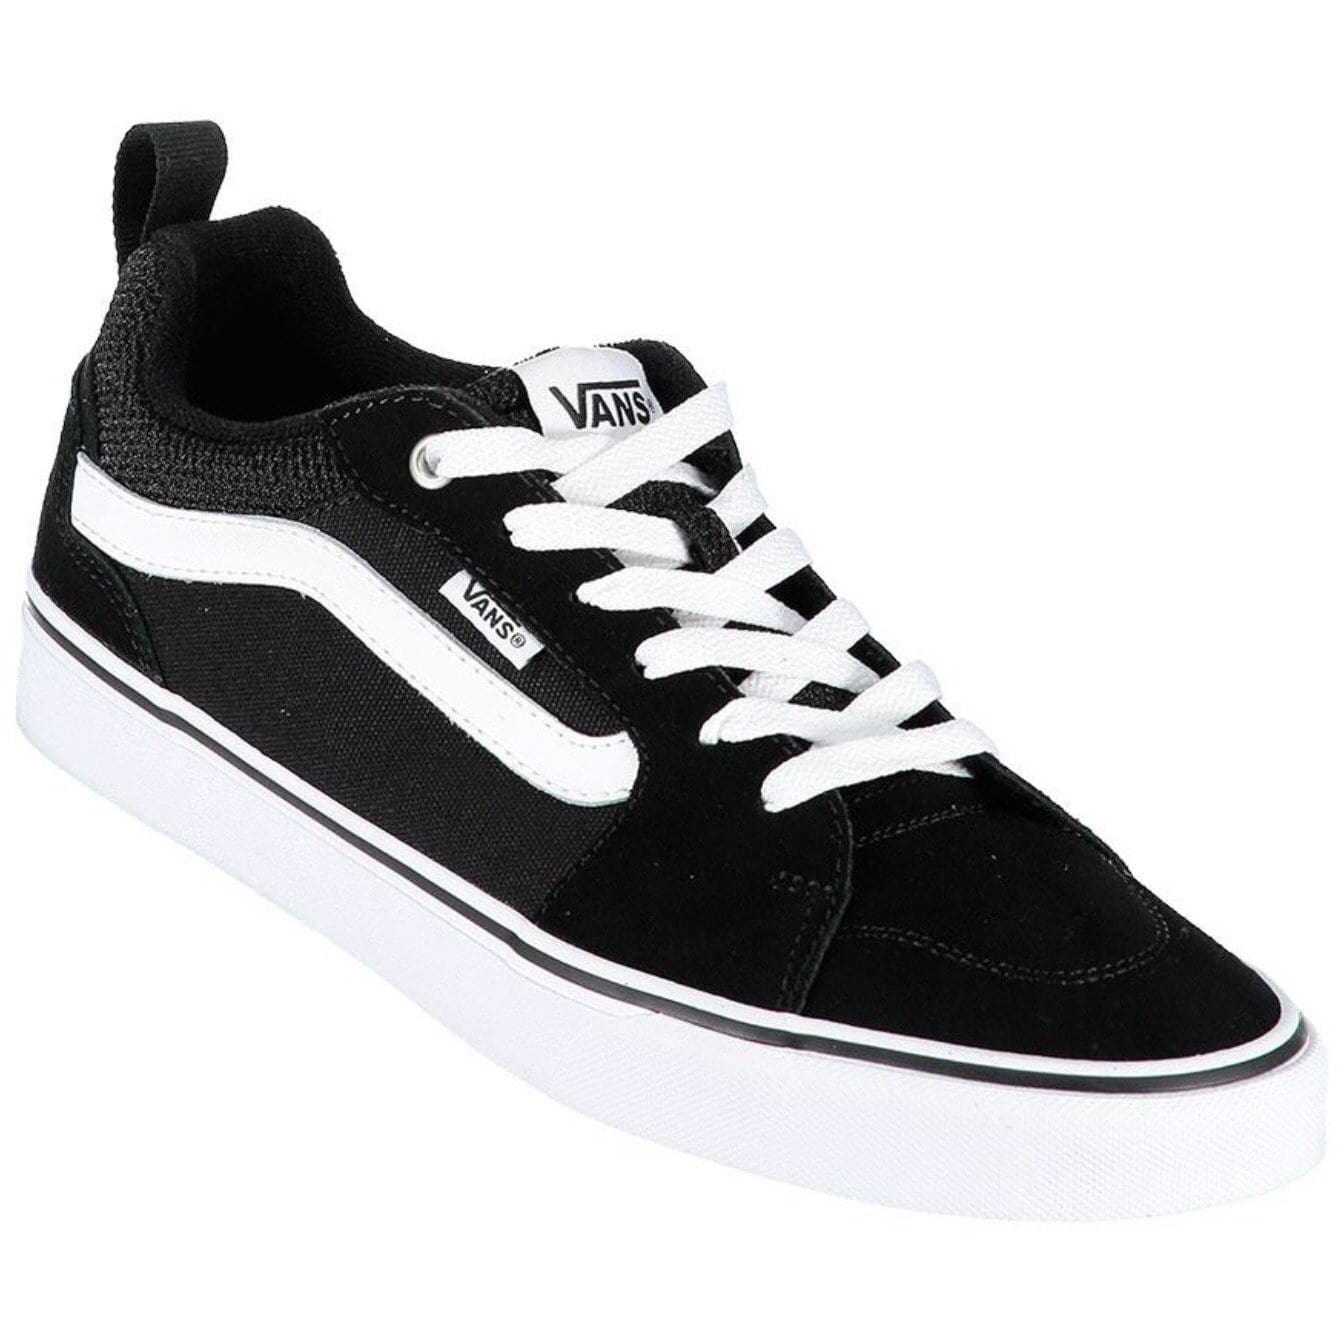 Vans Filmore Black White Kids Old Skool Trainer